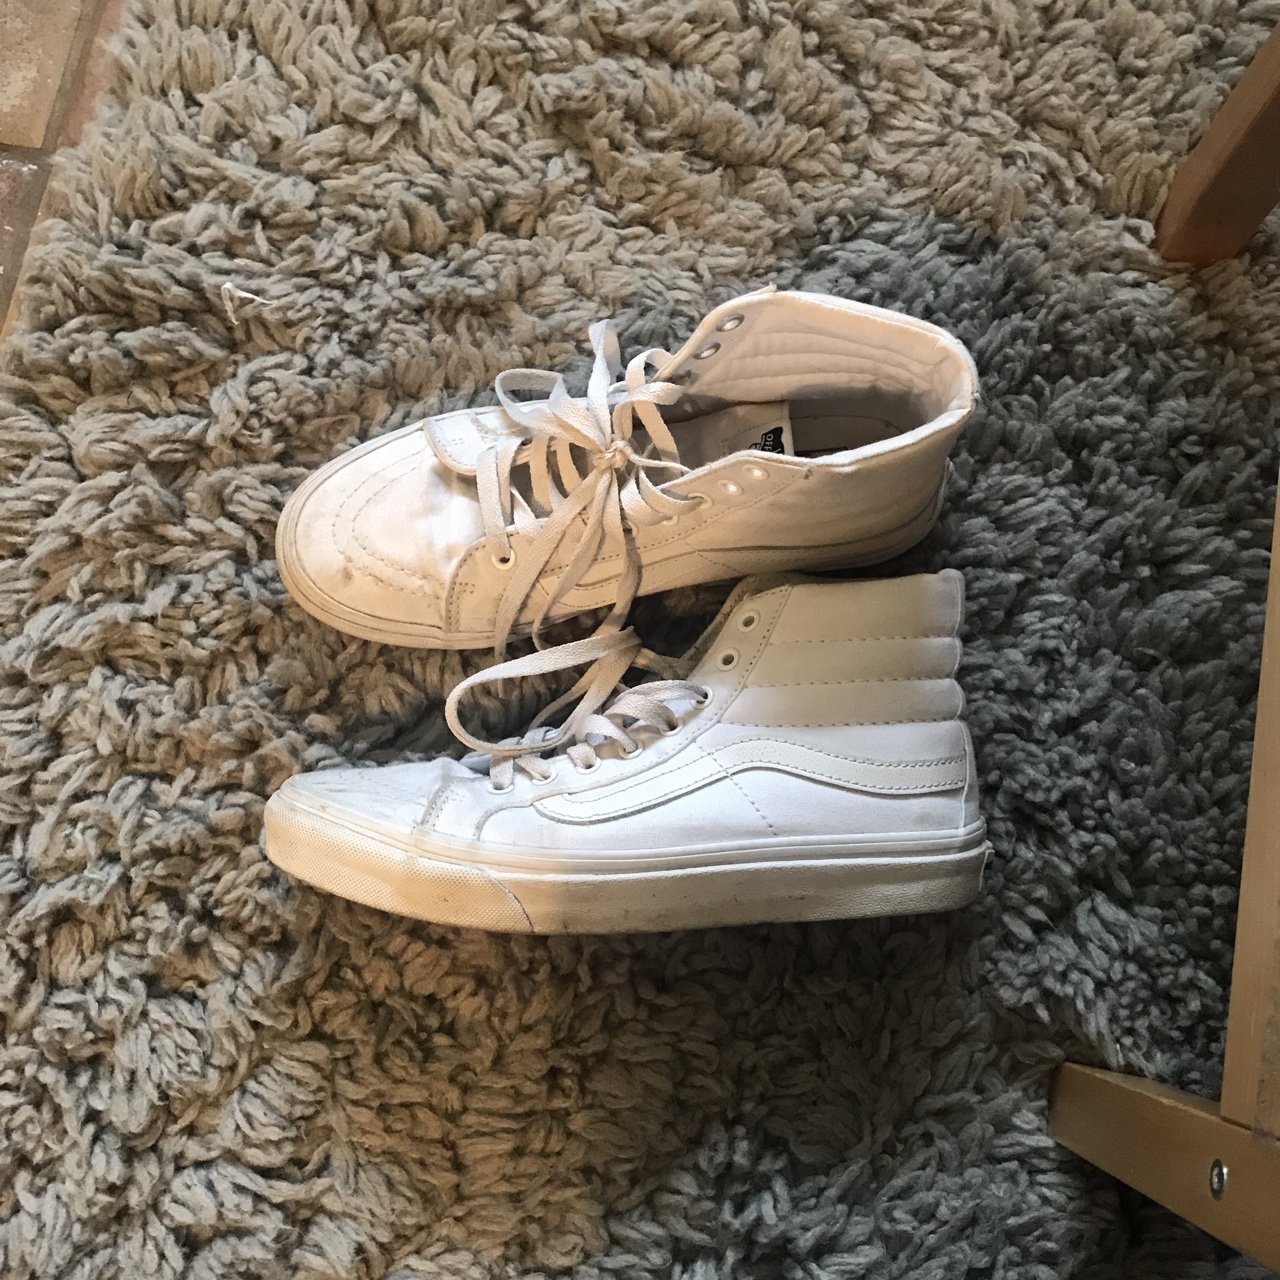 b3256e2cc2aefb VANS x ALYX authentic sneakers in white ! Rad red laces and - Depop